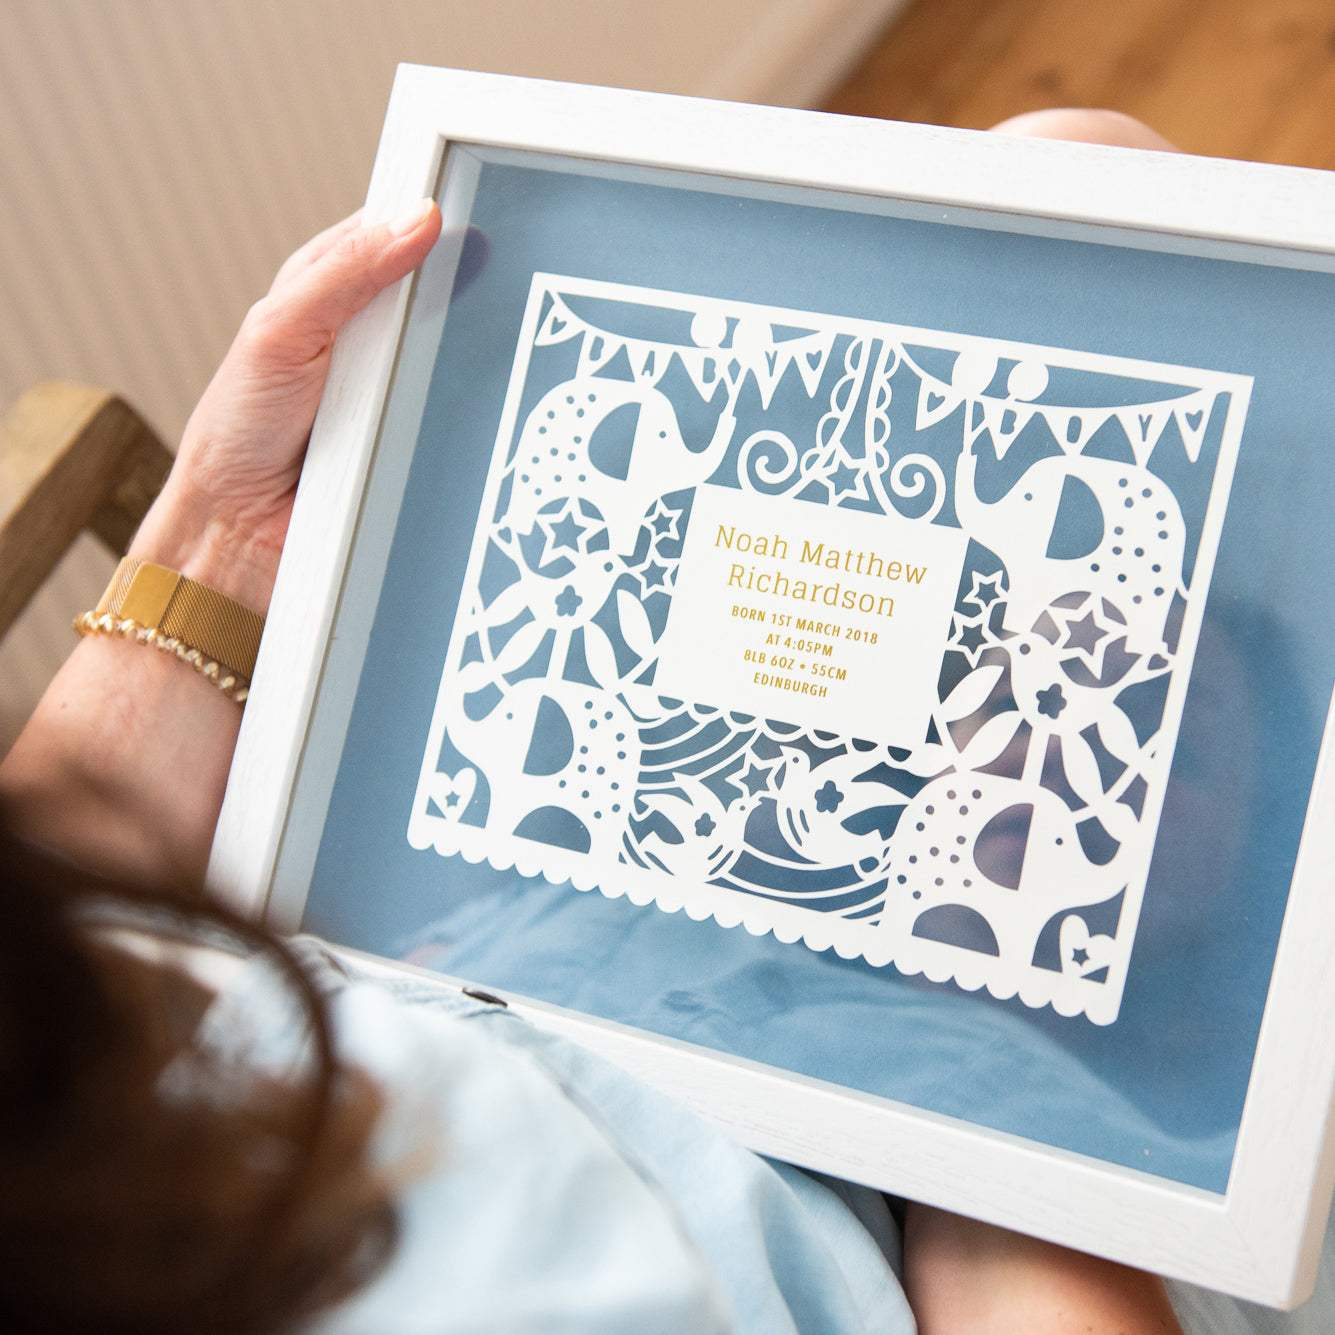 Personalised New Baby Gift - Ant Design Gifts